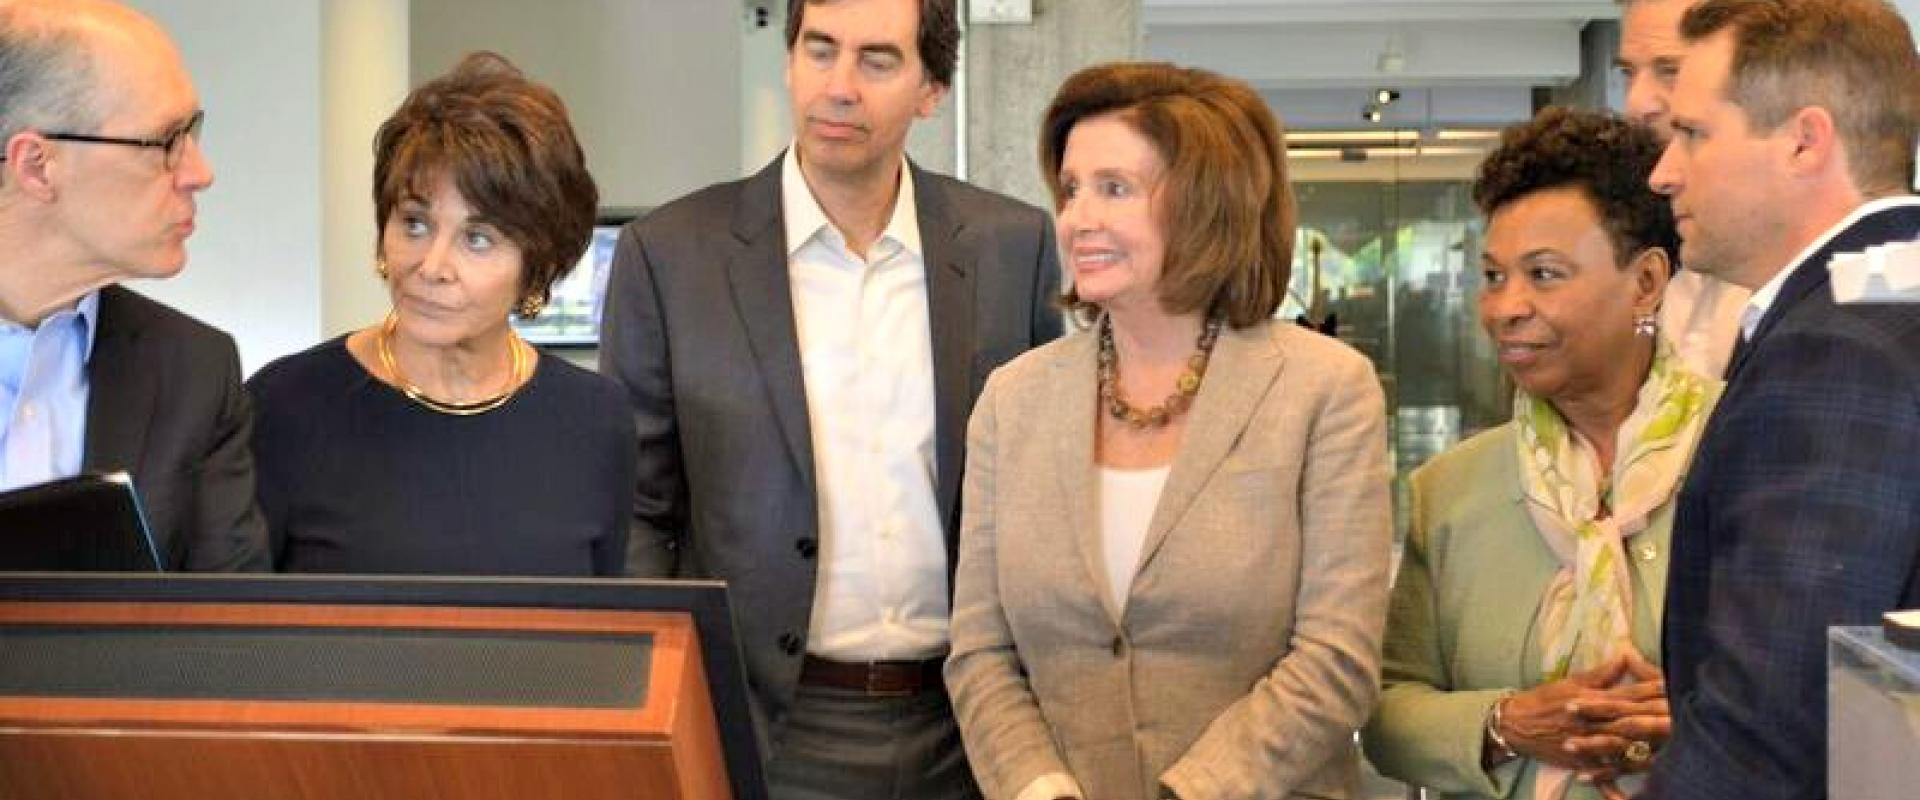 Congresswomen Nancy Pelosi, Anna Eshoo, and Barbara Lee tour the Autodesk Gallery after hosting an Innovation Agenda 2.0 Listening Session, where top technology, education, and creative leaders in San Francisco discussed the ingredients America needs to r